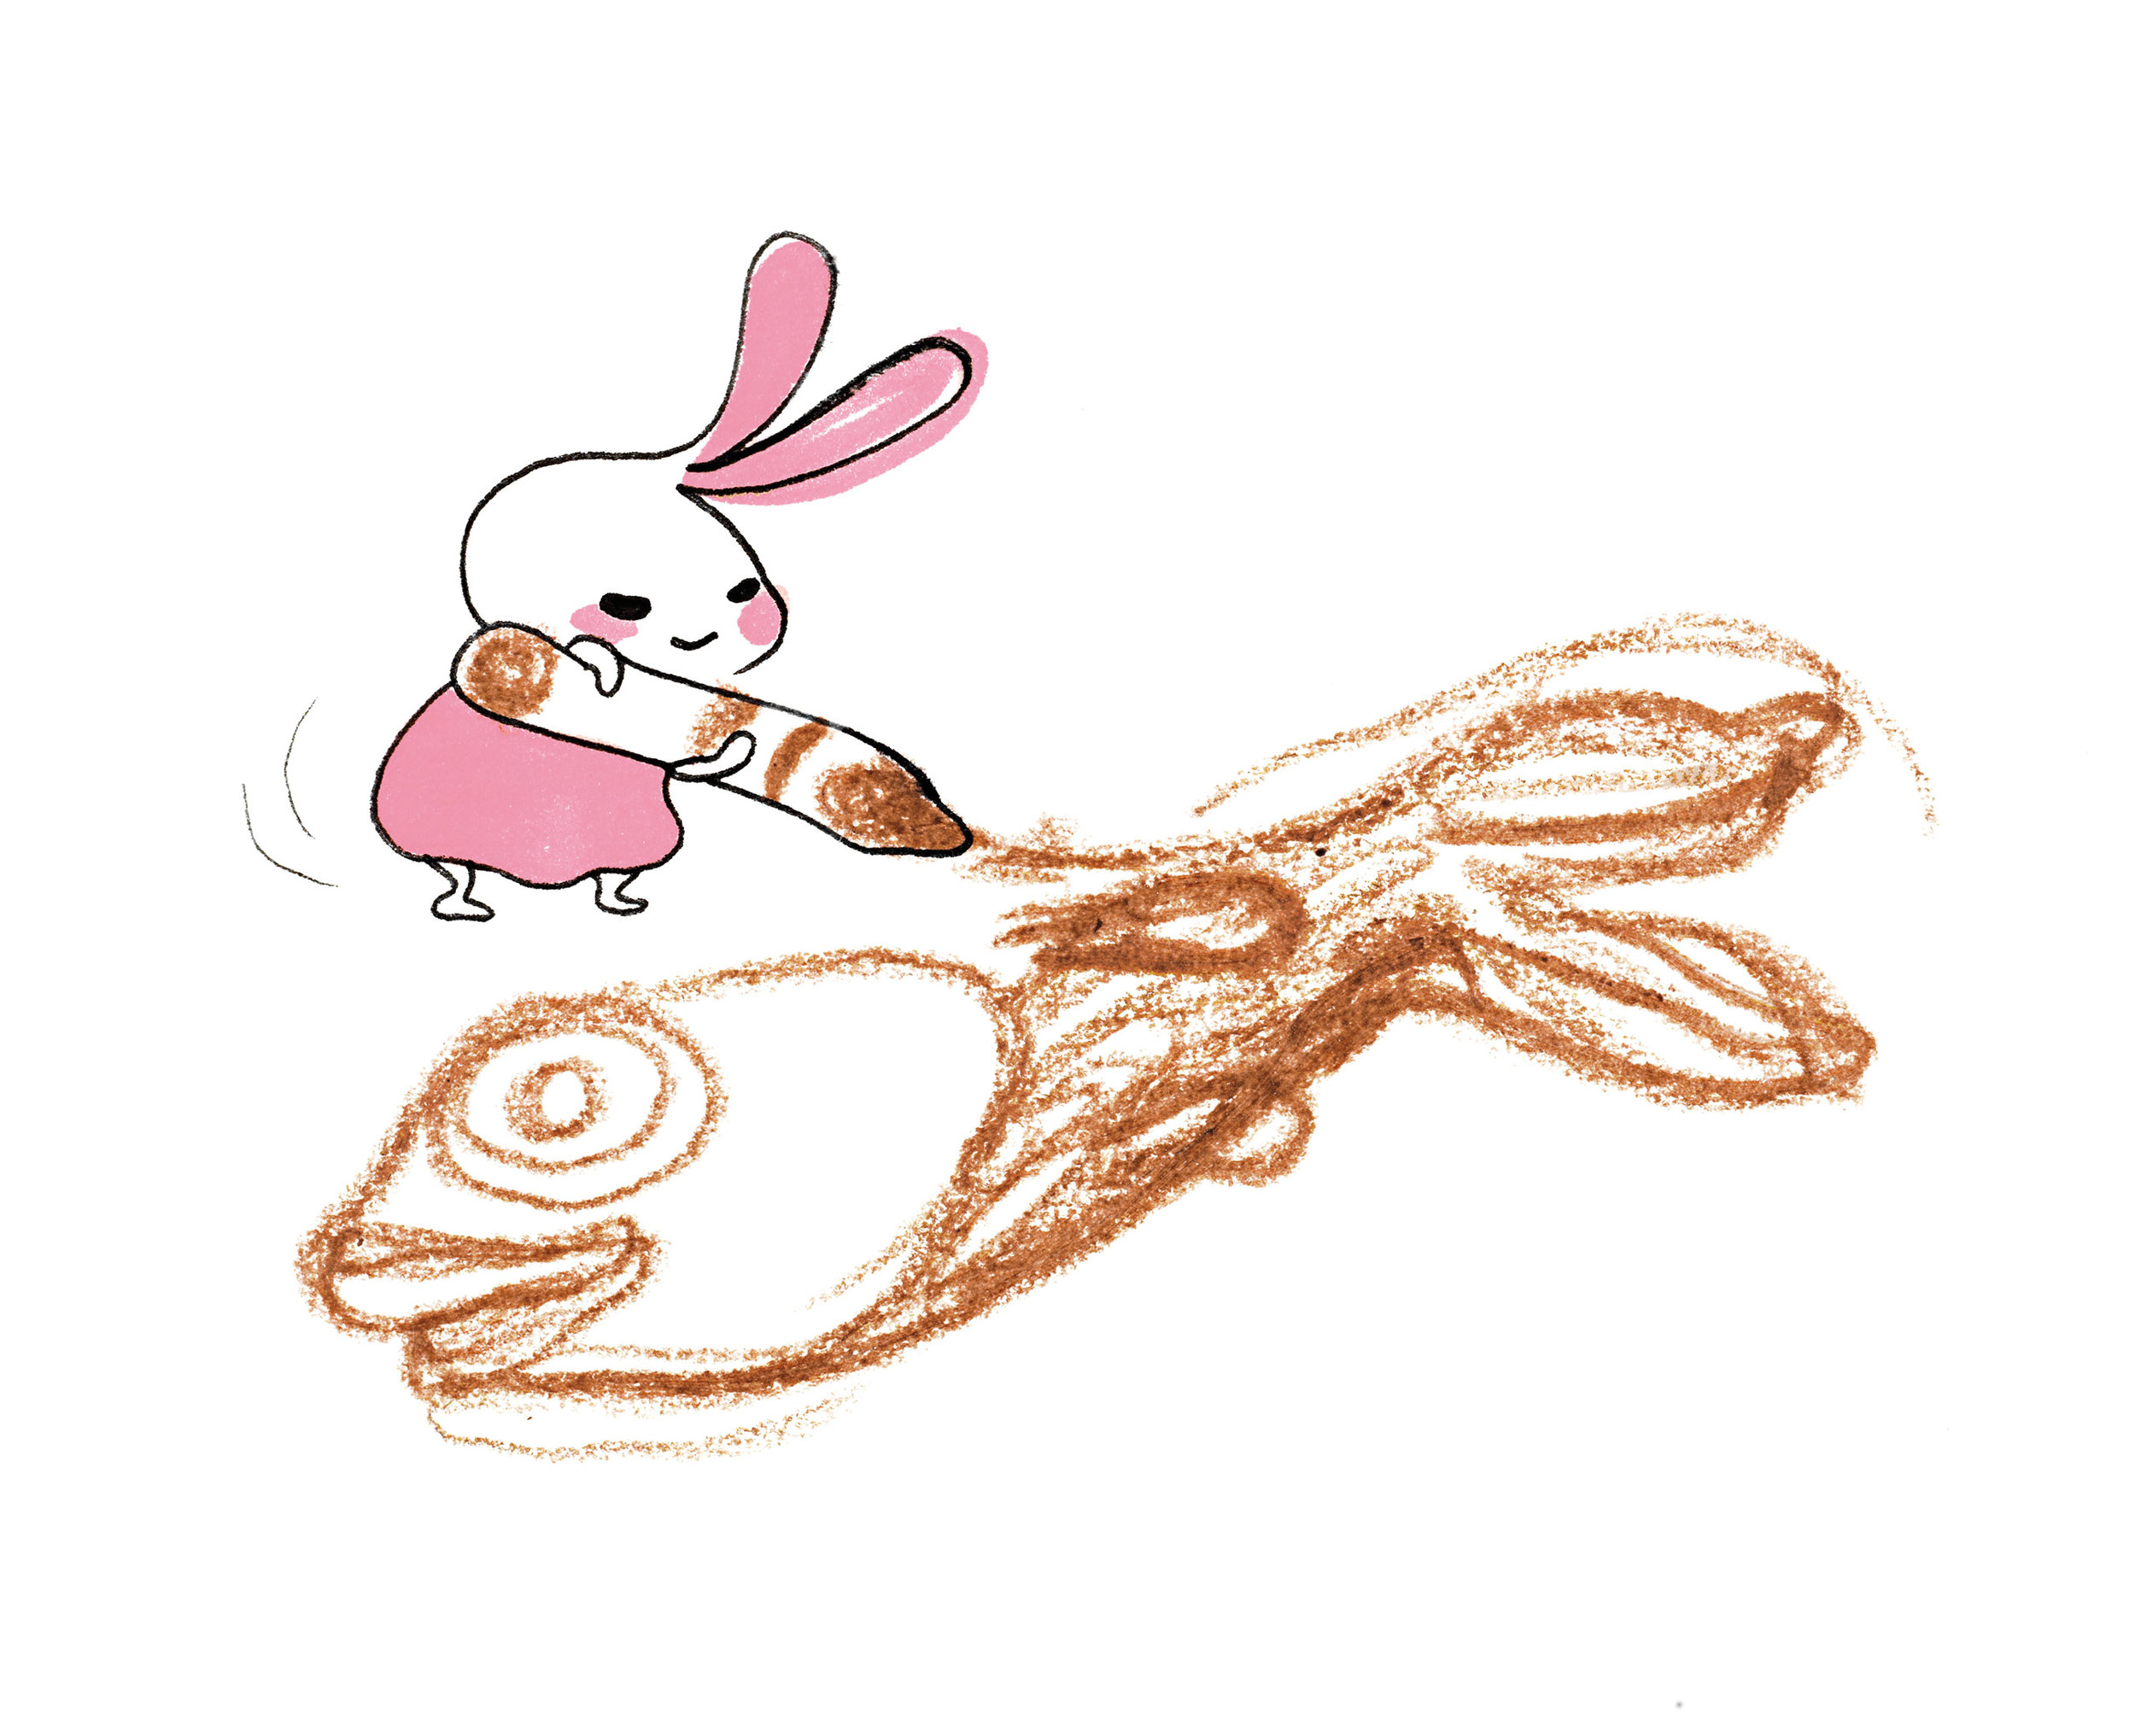 little-Pink-is-drawing.jpg